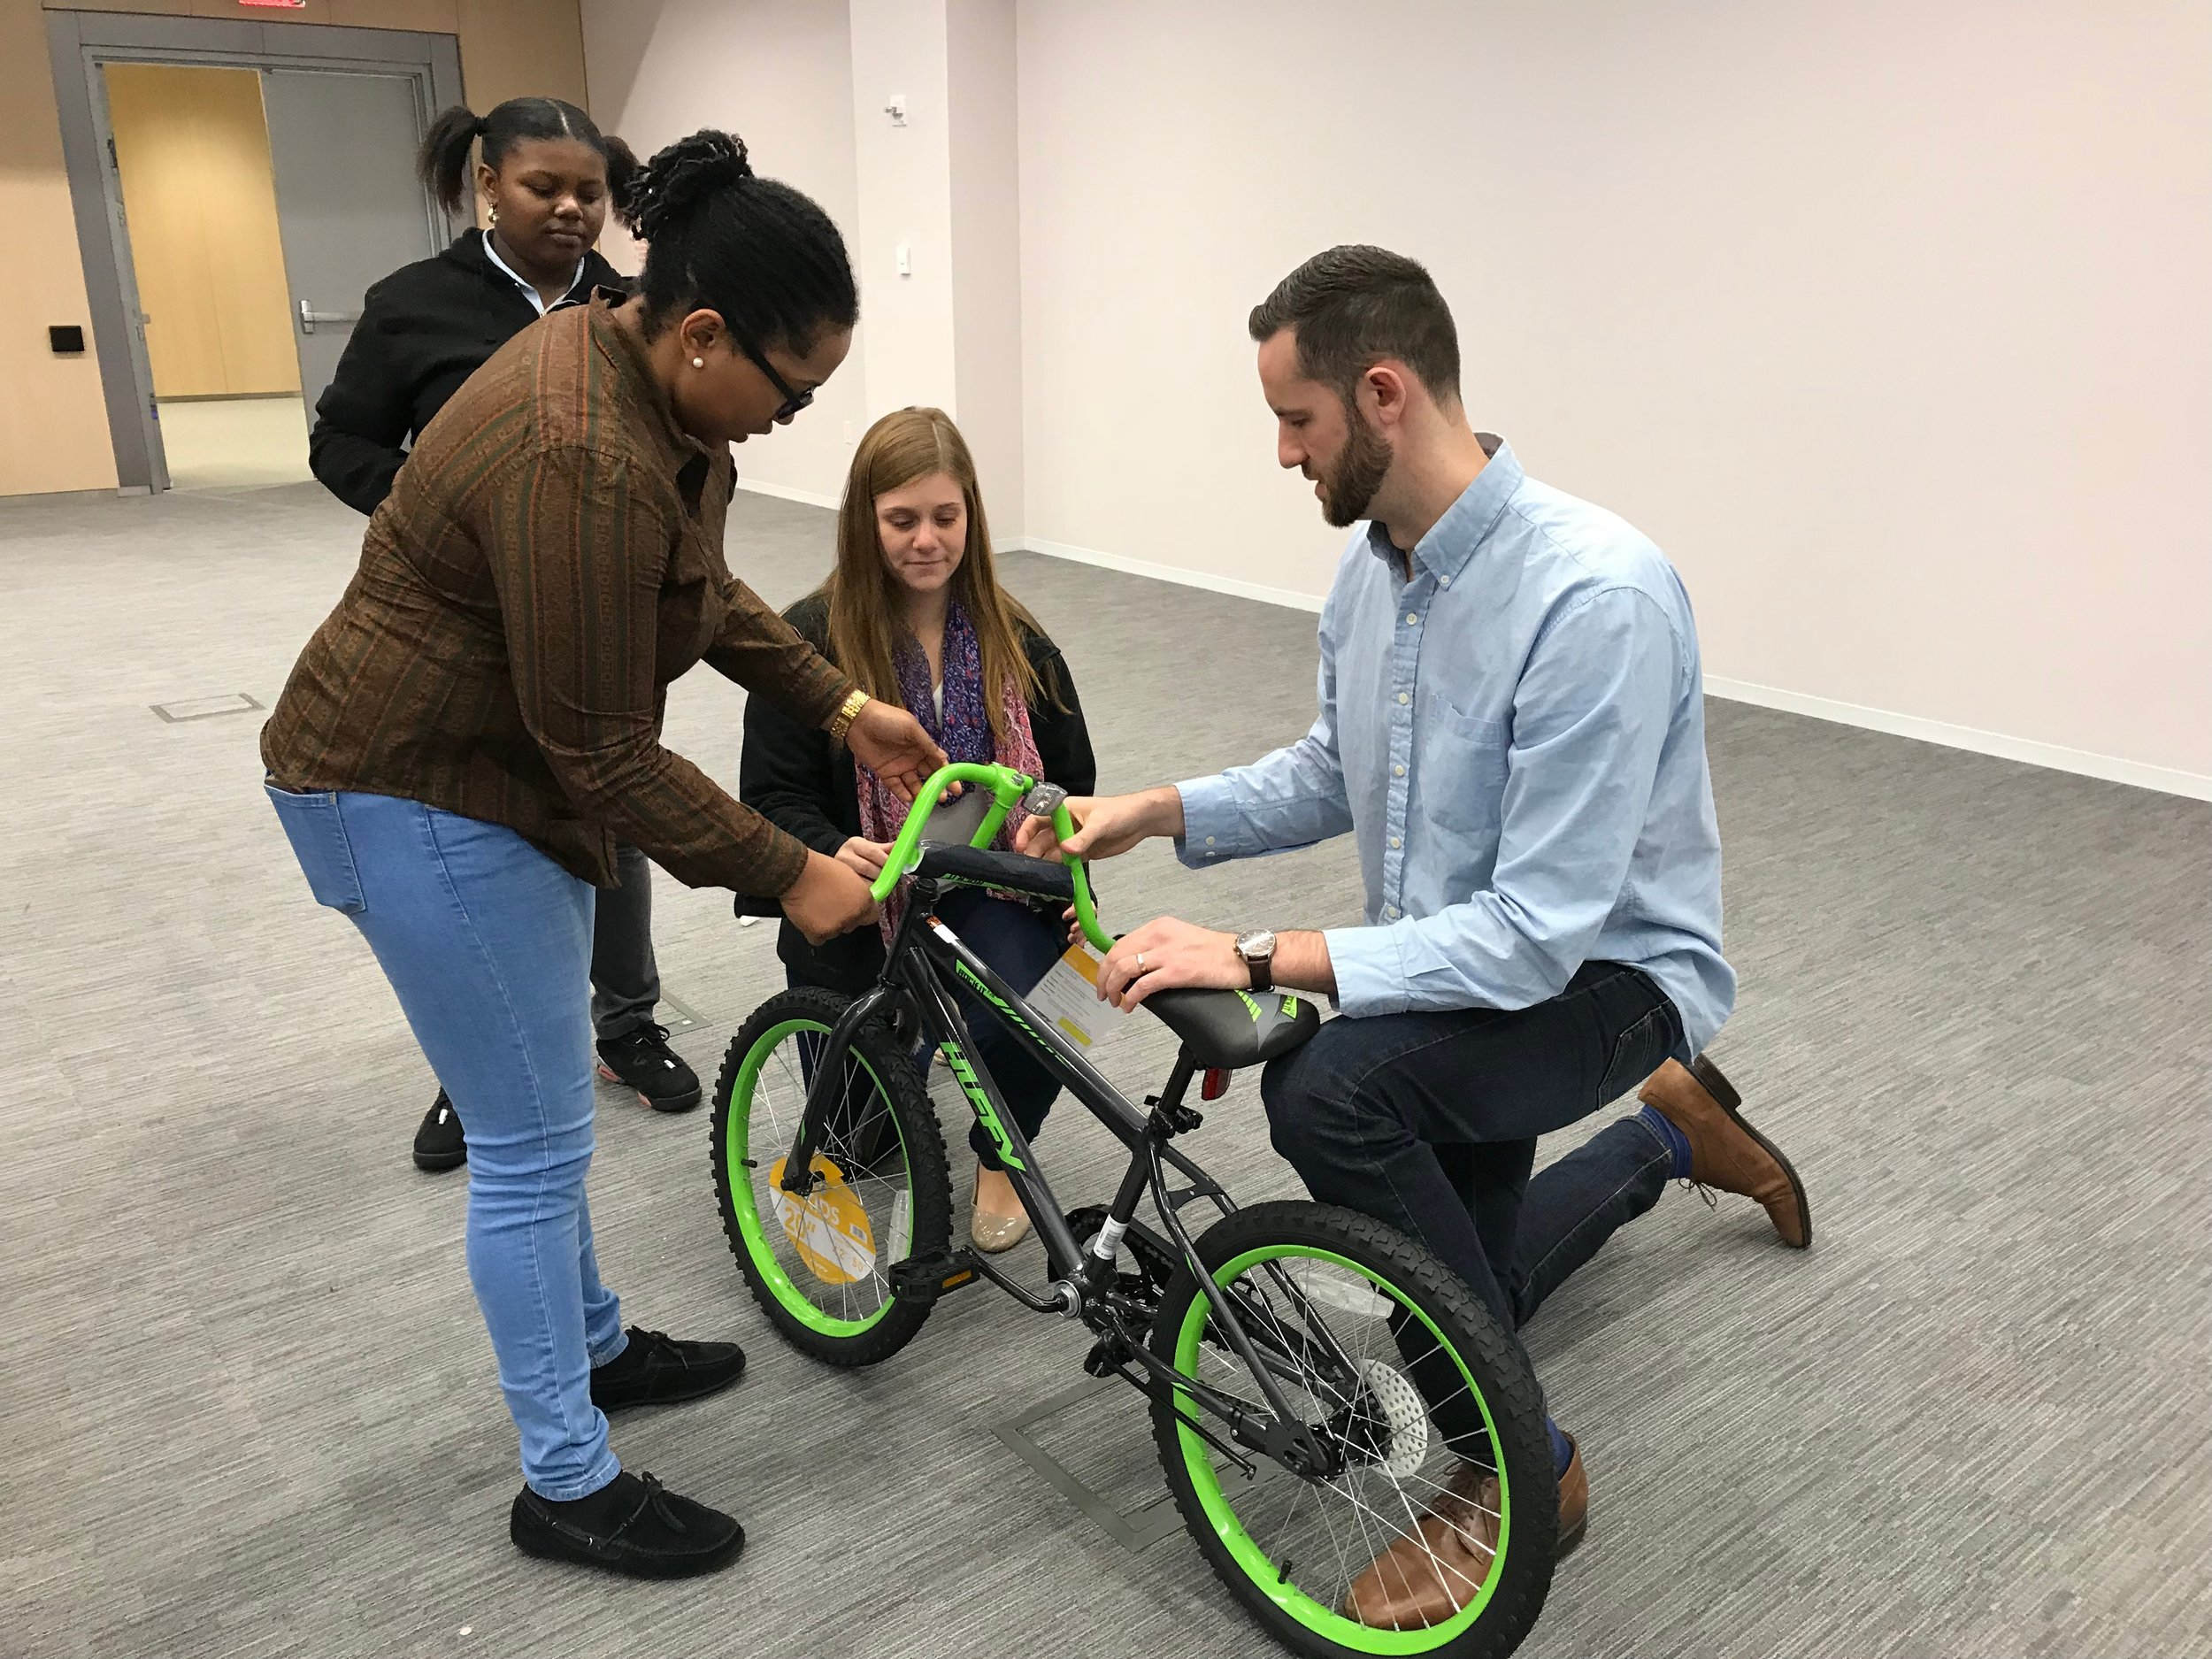 After solving the challenge and receiving all of the pieces, the team was able to build the bike with no use of the manual.